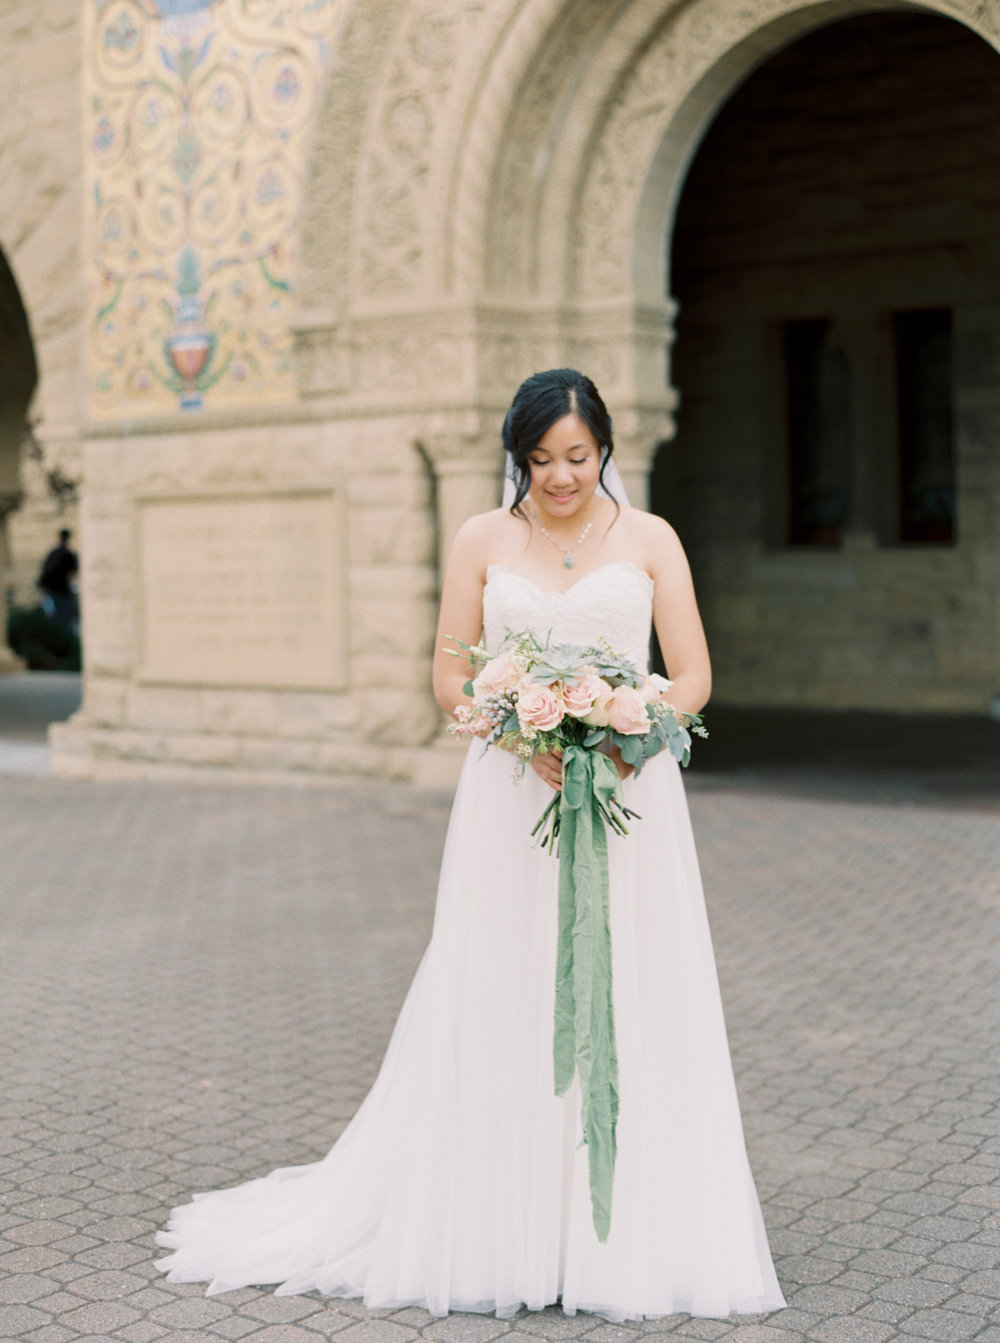 trynhphoto_wedding_photography_Standford_PaloAlto_SF_BayArea_Destination_OC_HA-19.jpg